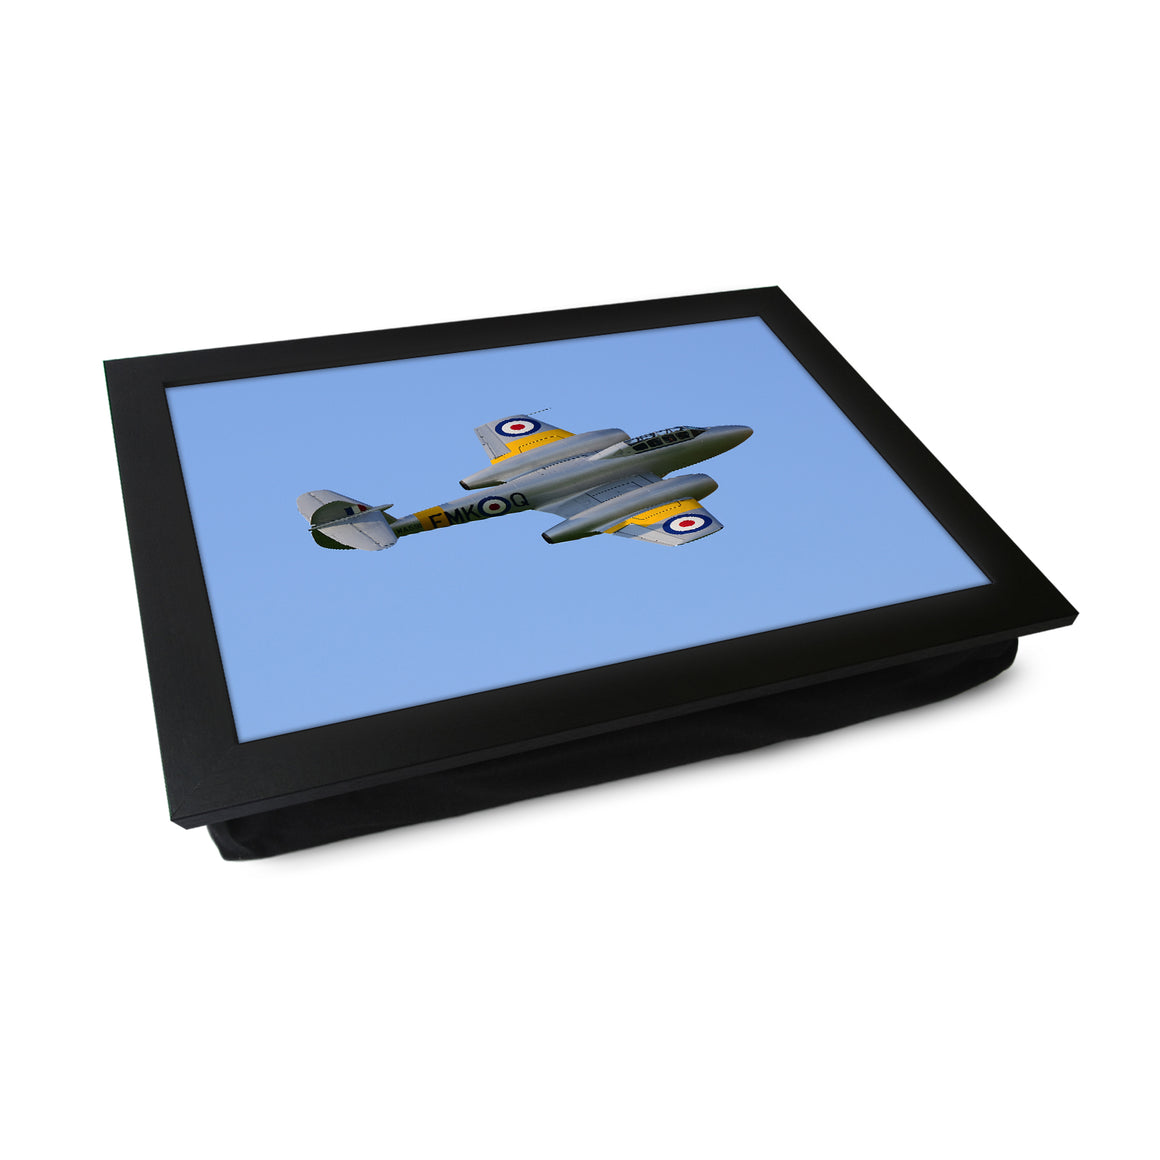 Gloster Meteor Plane Lap Tray - AD13605